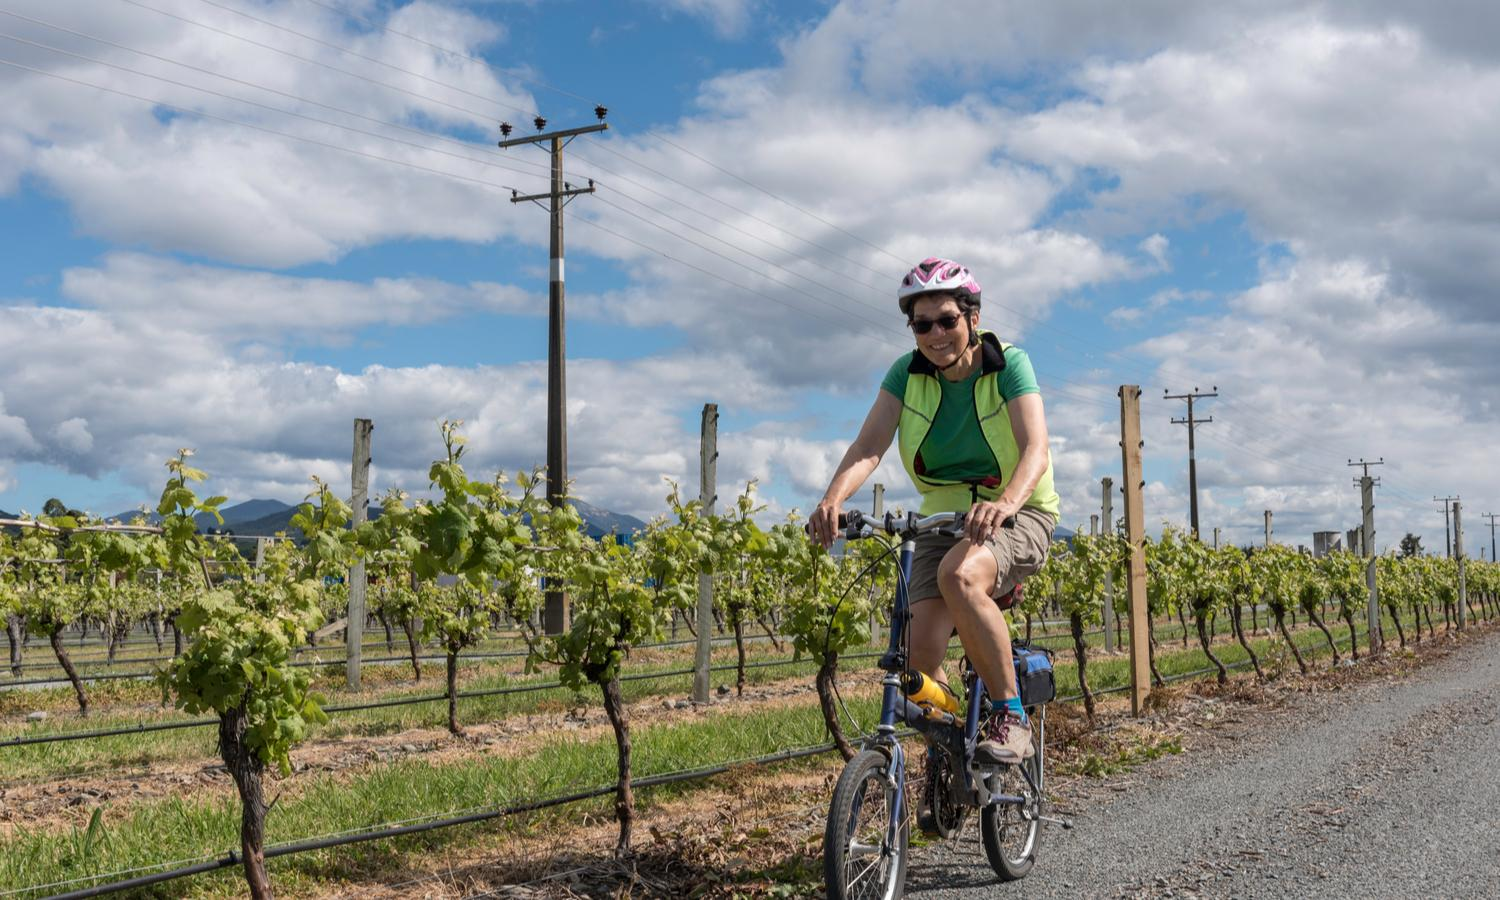 Cycle through the vines